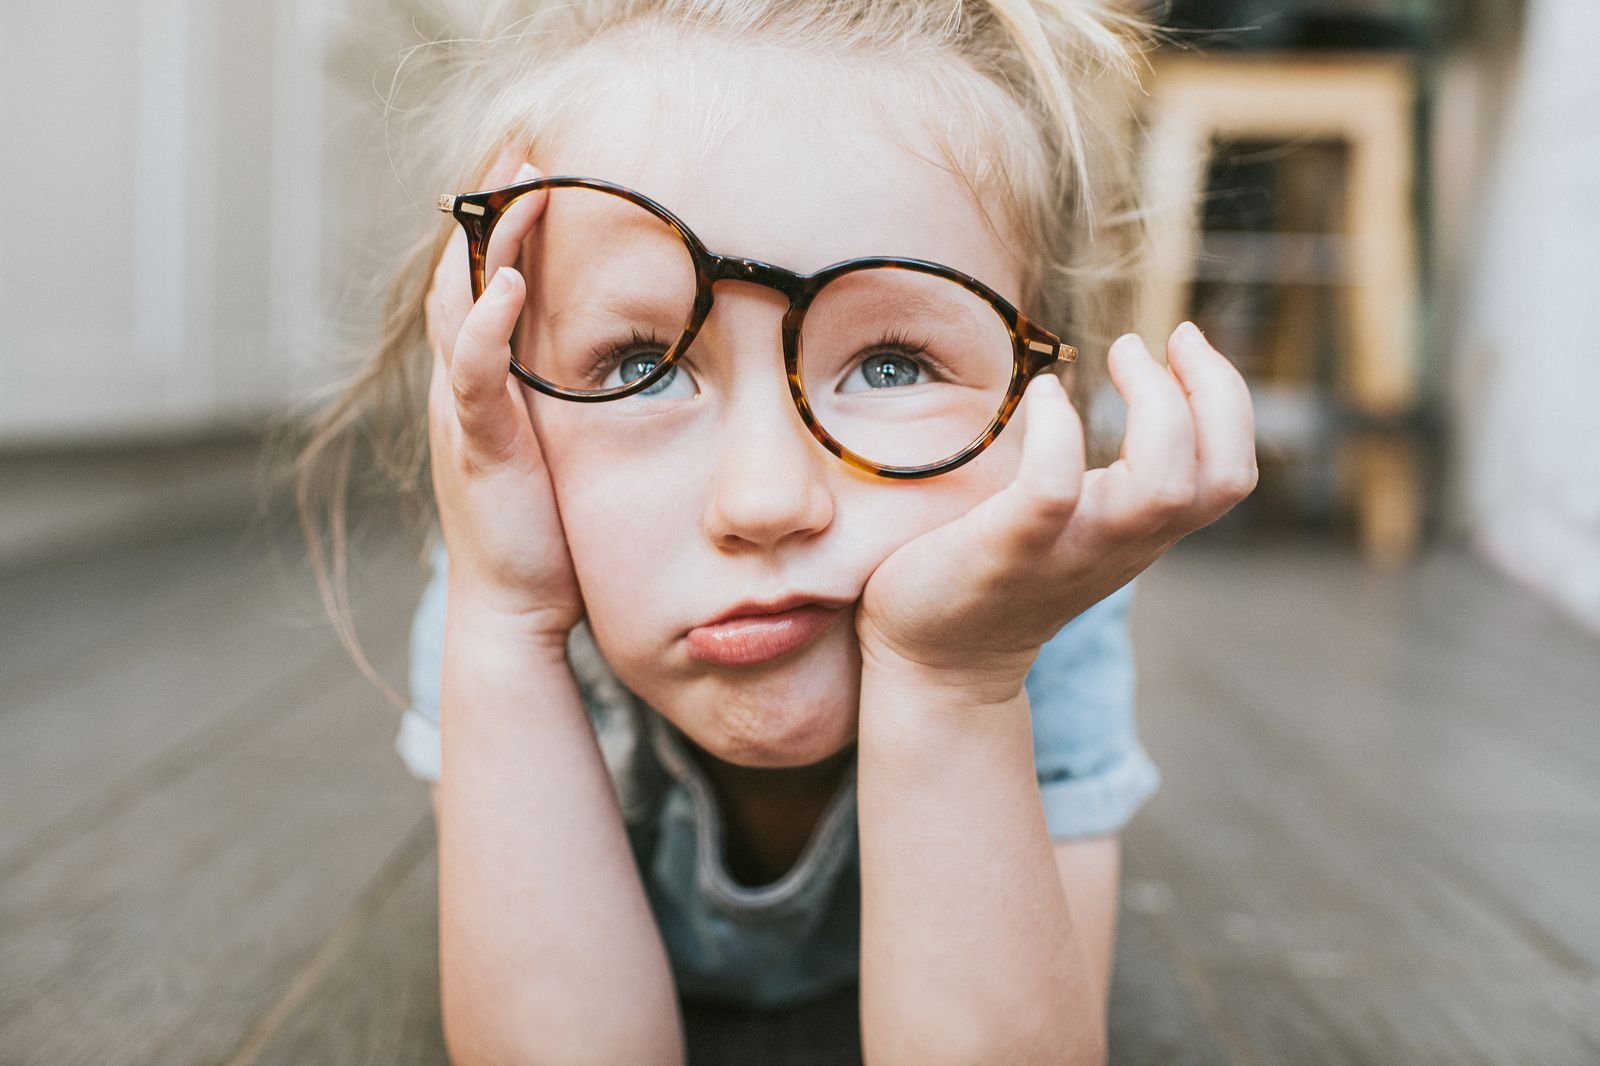 Bored Child in Glasses